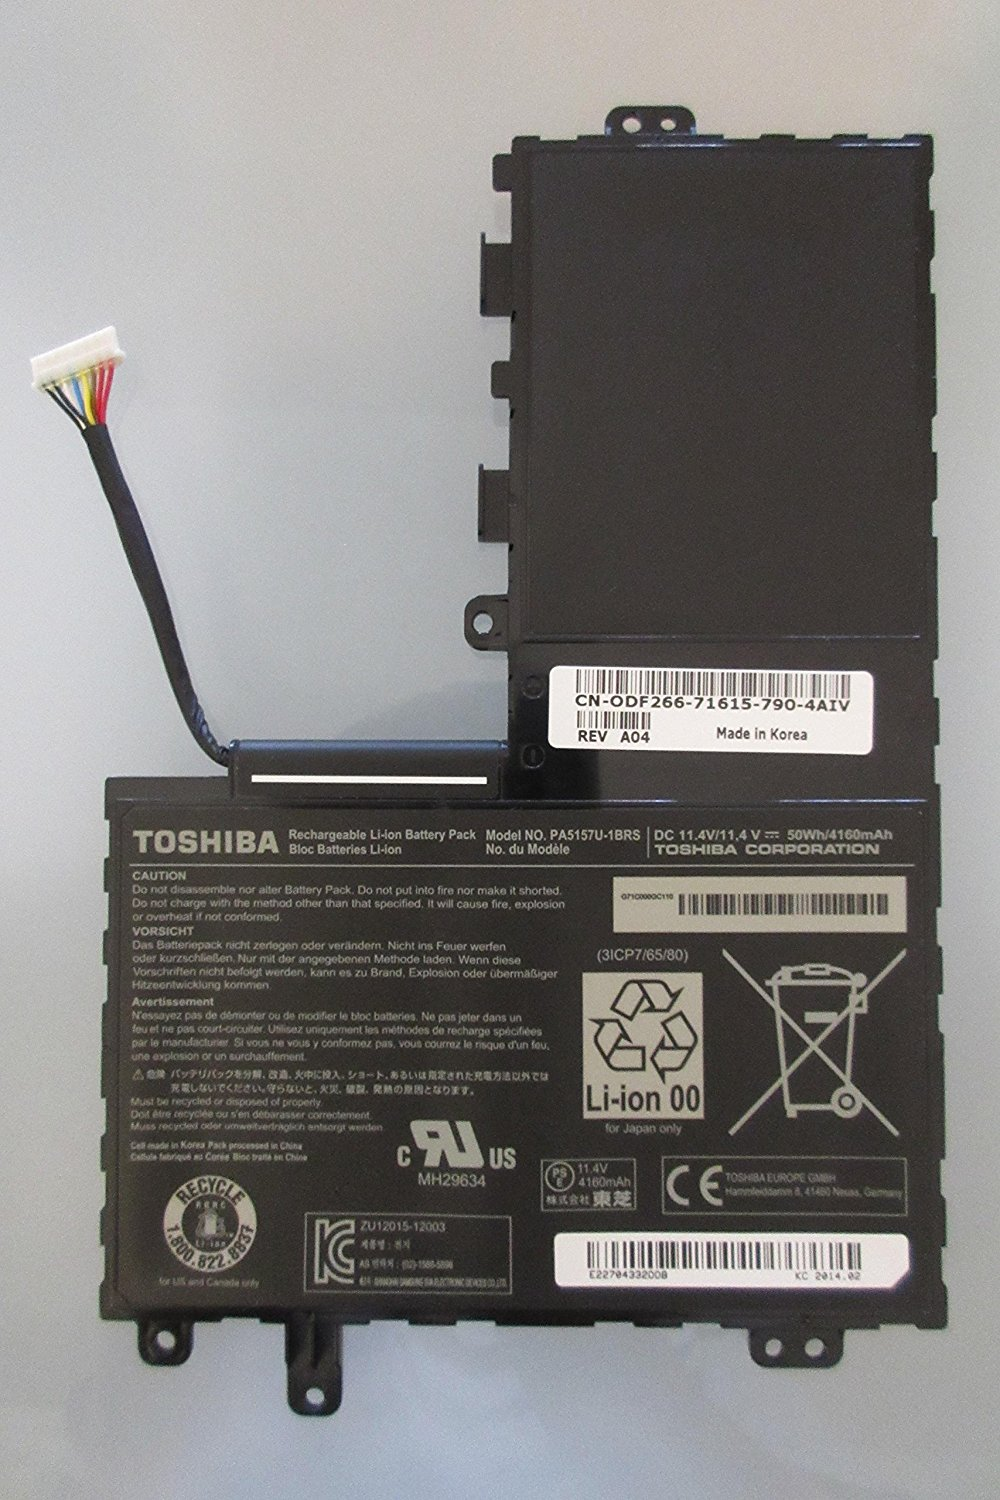 Li-ion 3 Cell Battery 50Wh 11.4V for Toshiba Satellite E45T-AST2N01 E45T-AST2N02 New Genuine